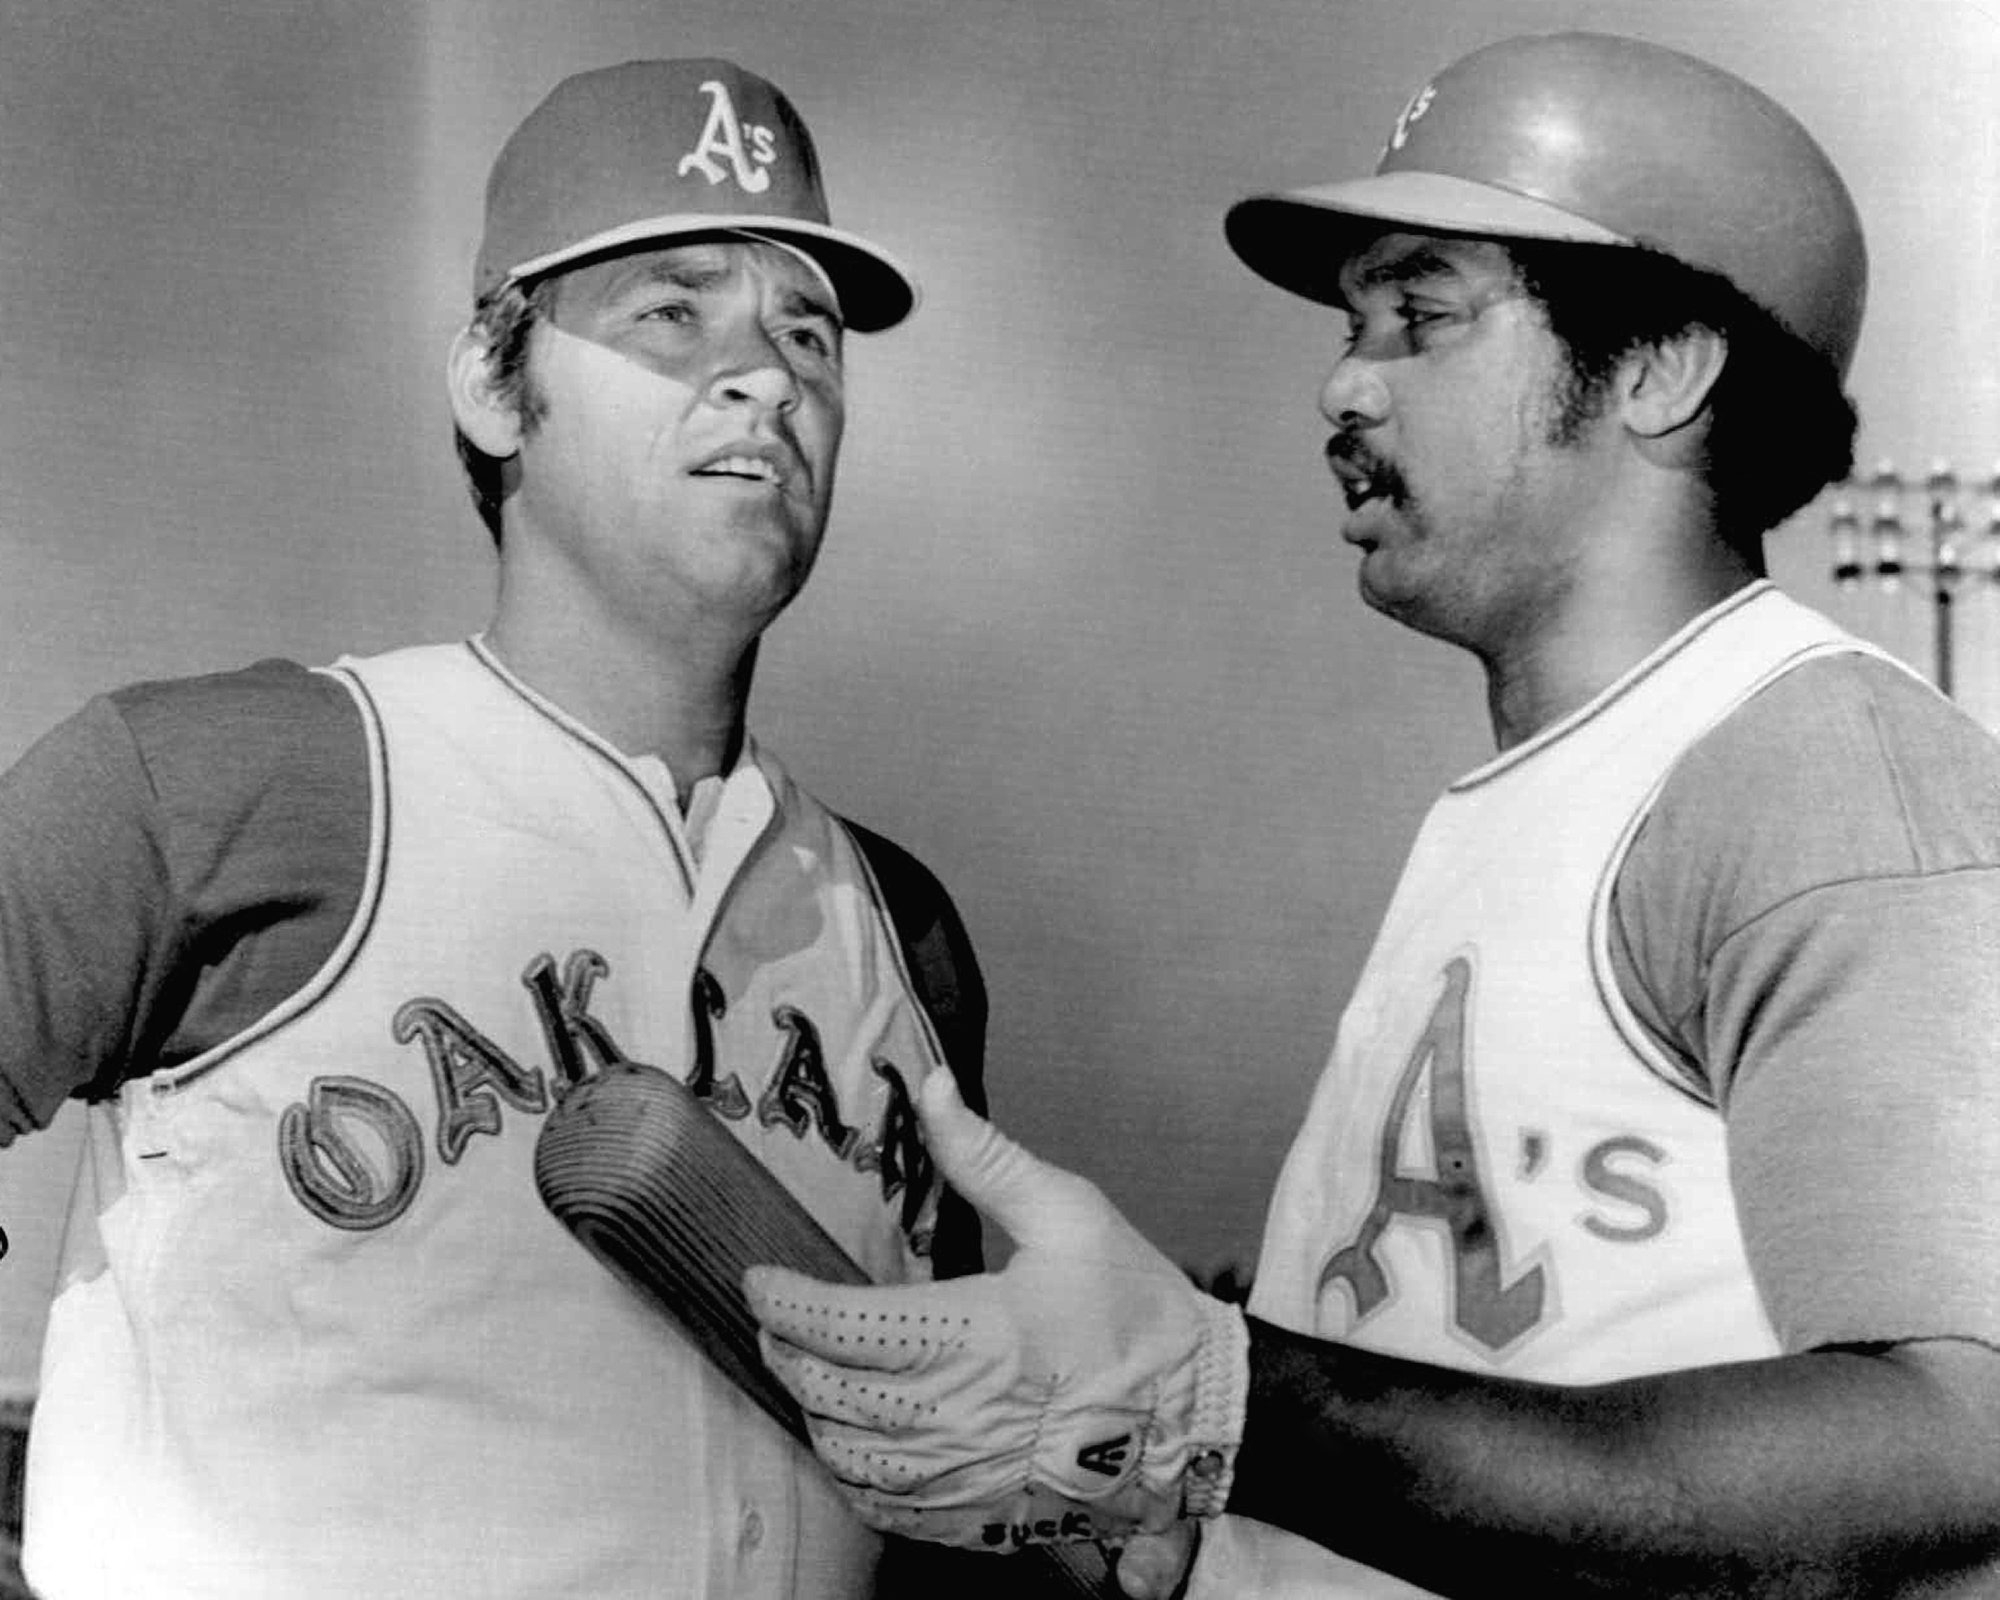 Denny McClain, left, is greeted by new teammate Reggie Jackson after he was traded from Texas to the Oakland A's in 1972.